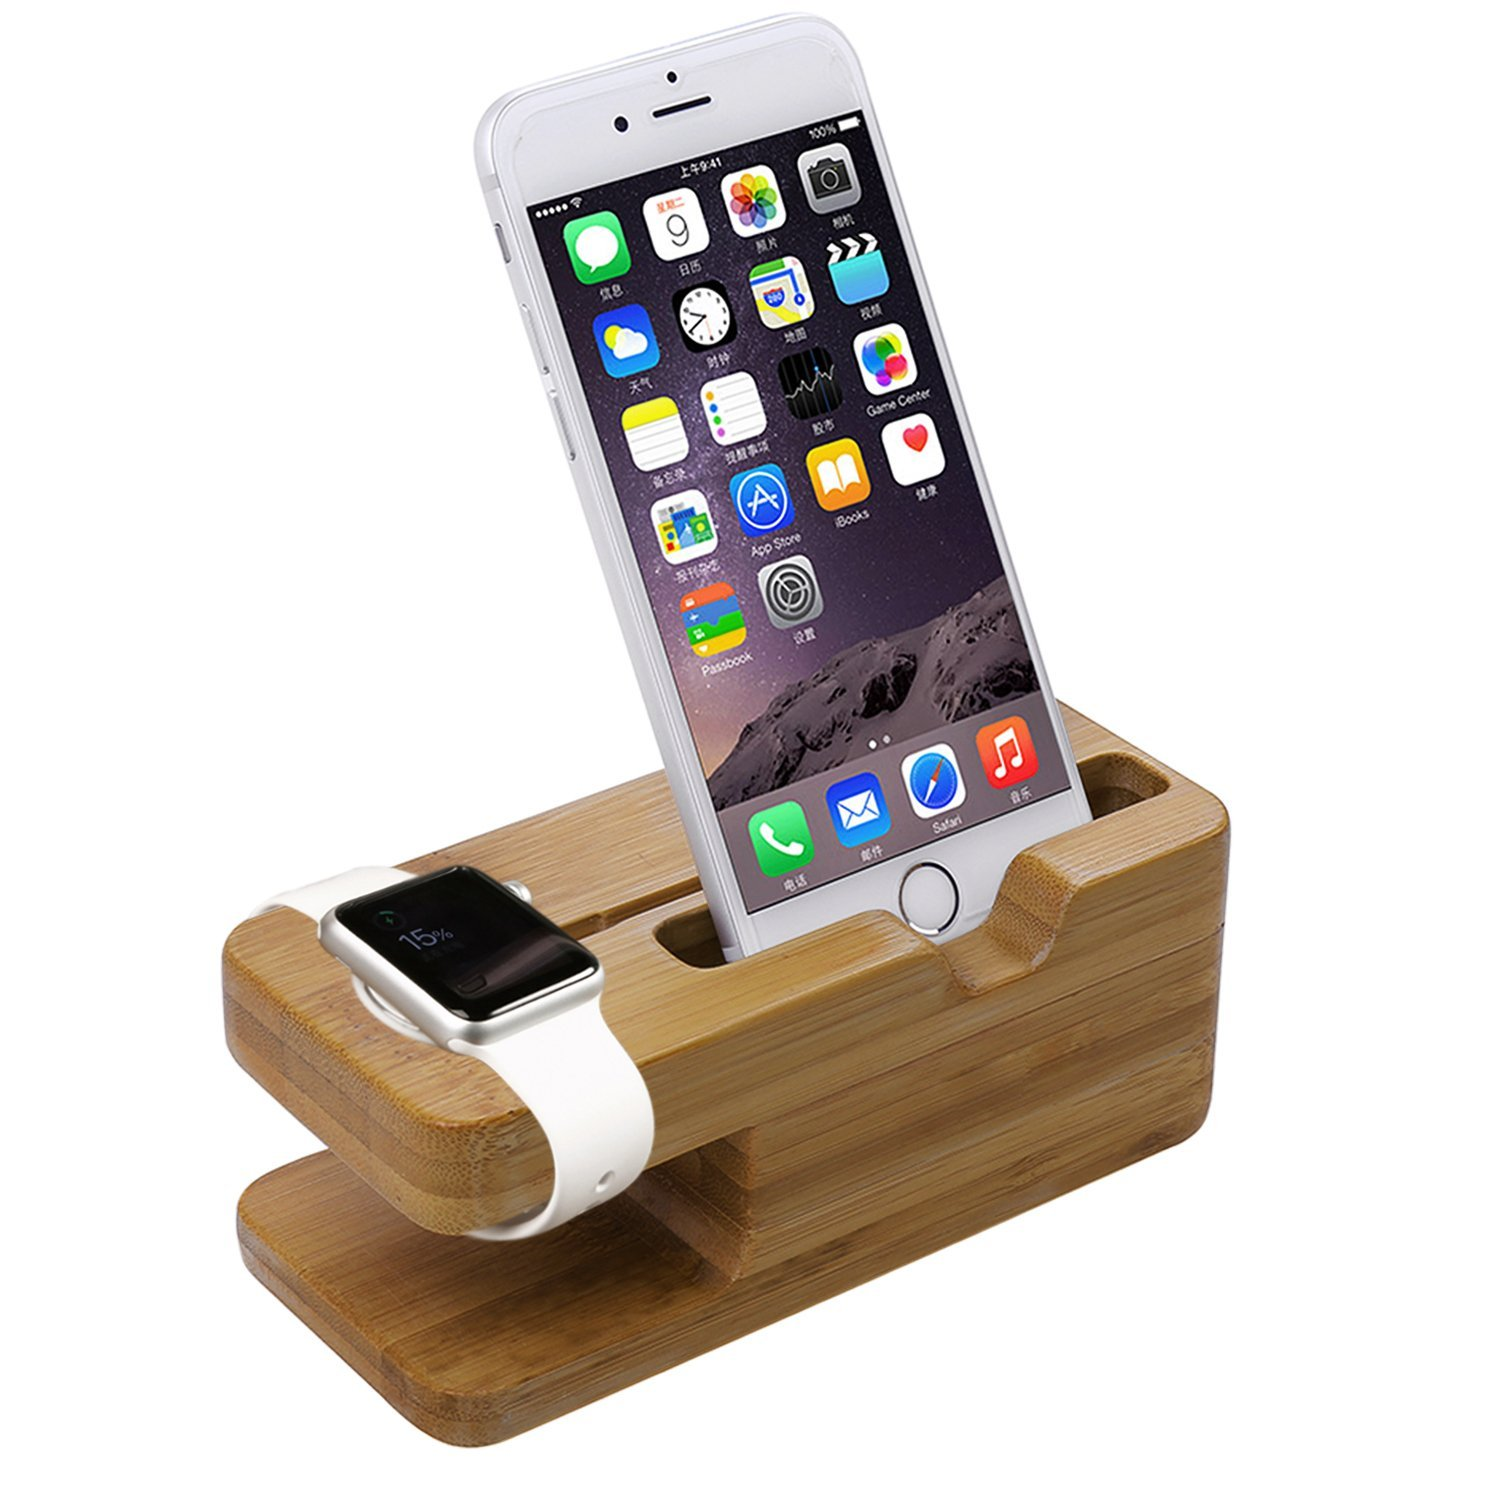 apple watch accessories, apple watch dock, apple watch charging stand